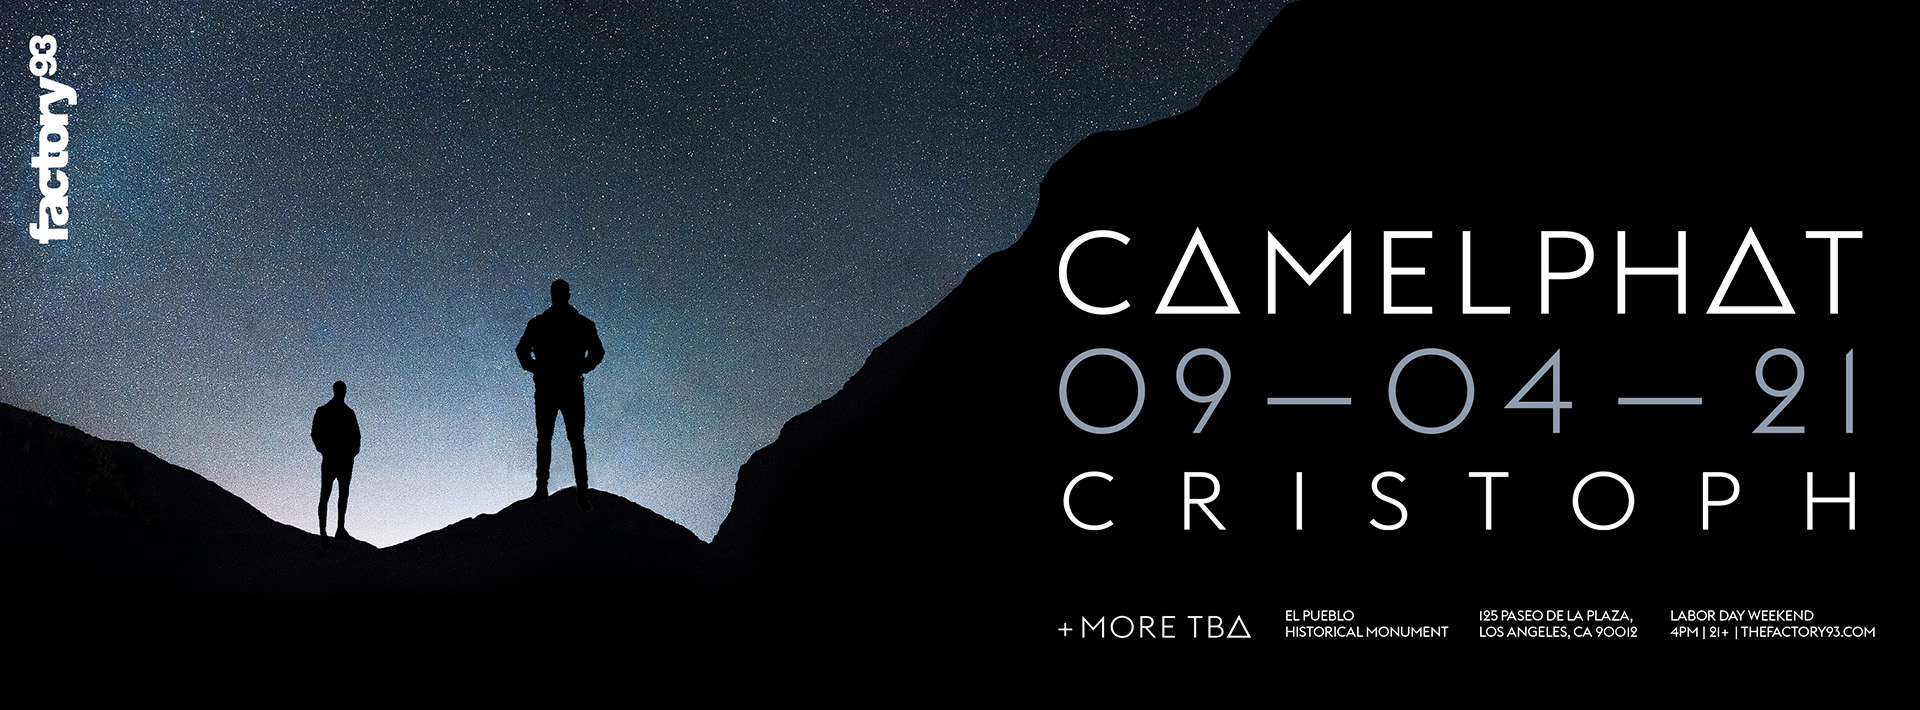 CamelPhat with Cristoph